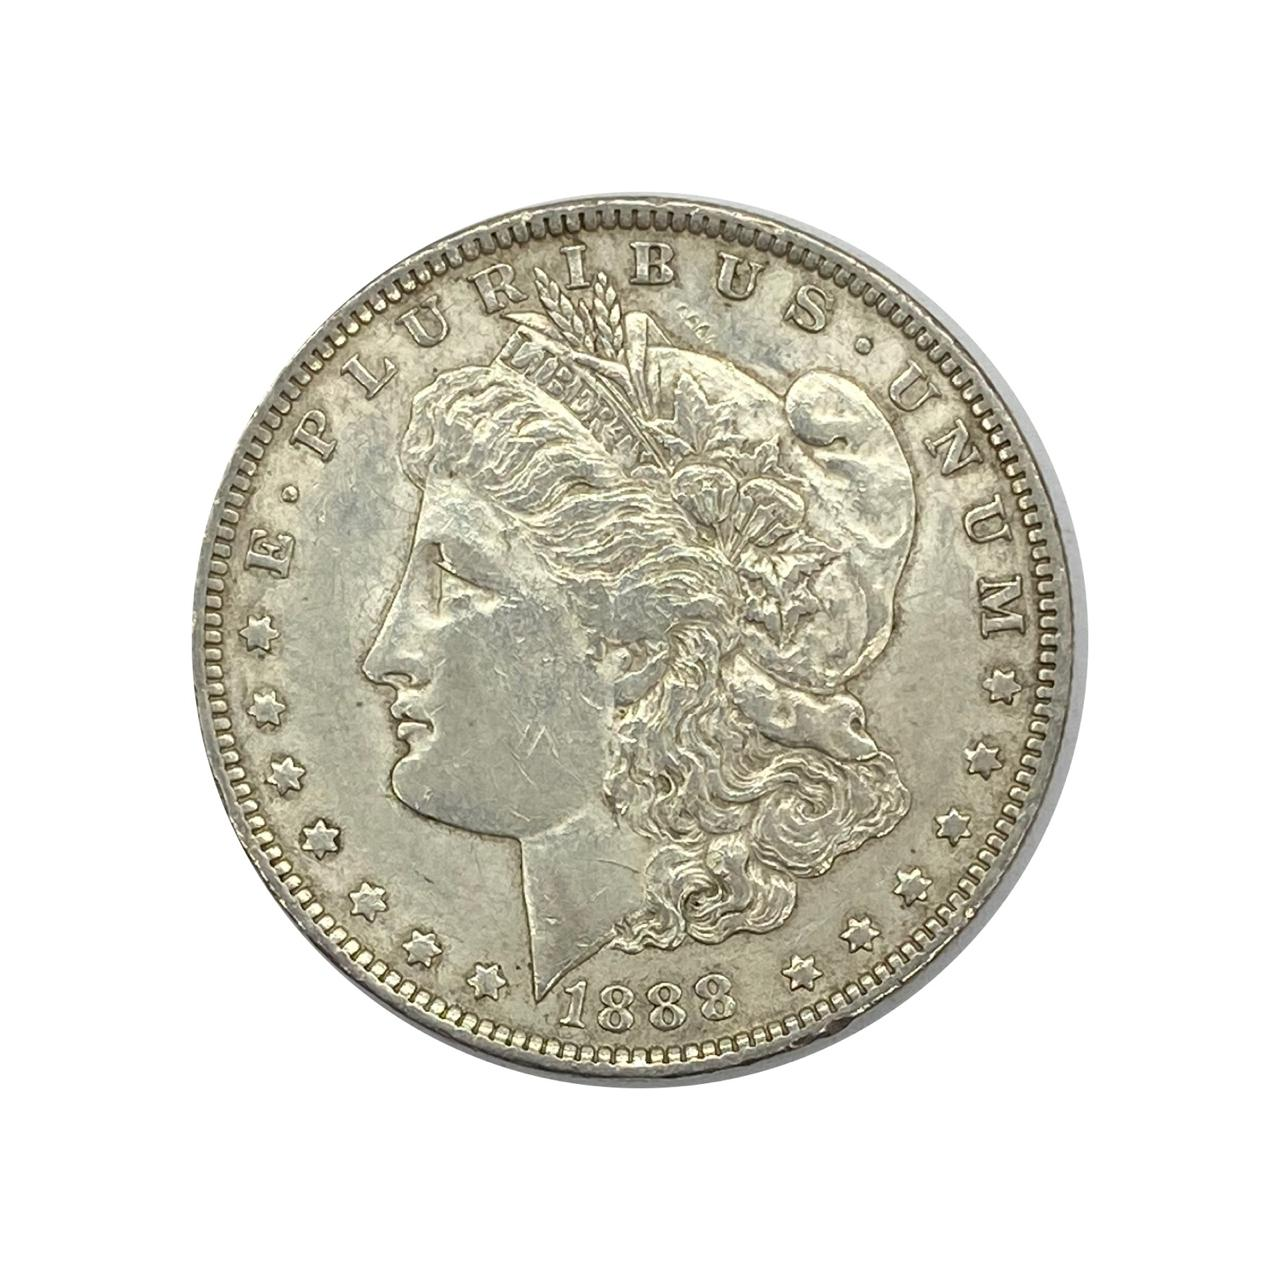 1 Dólar Morgan Dollar-1888